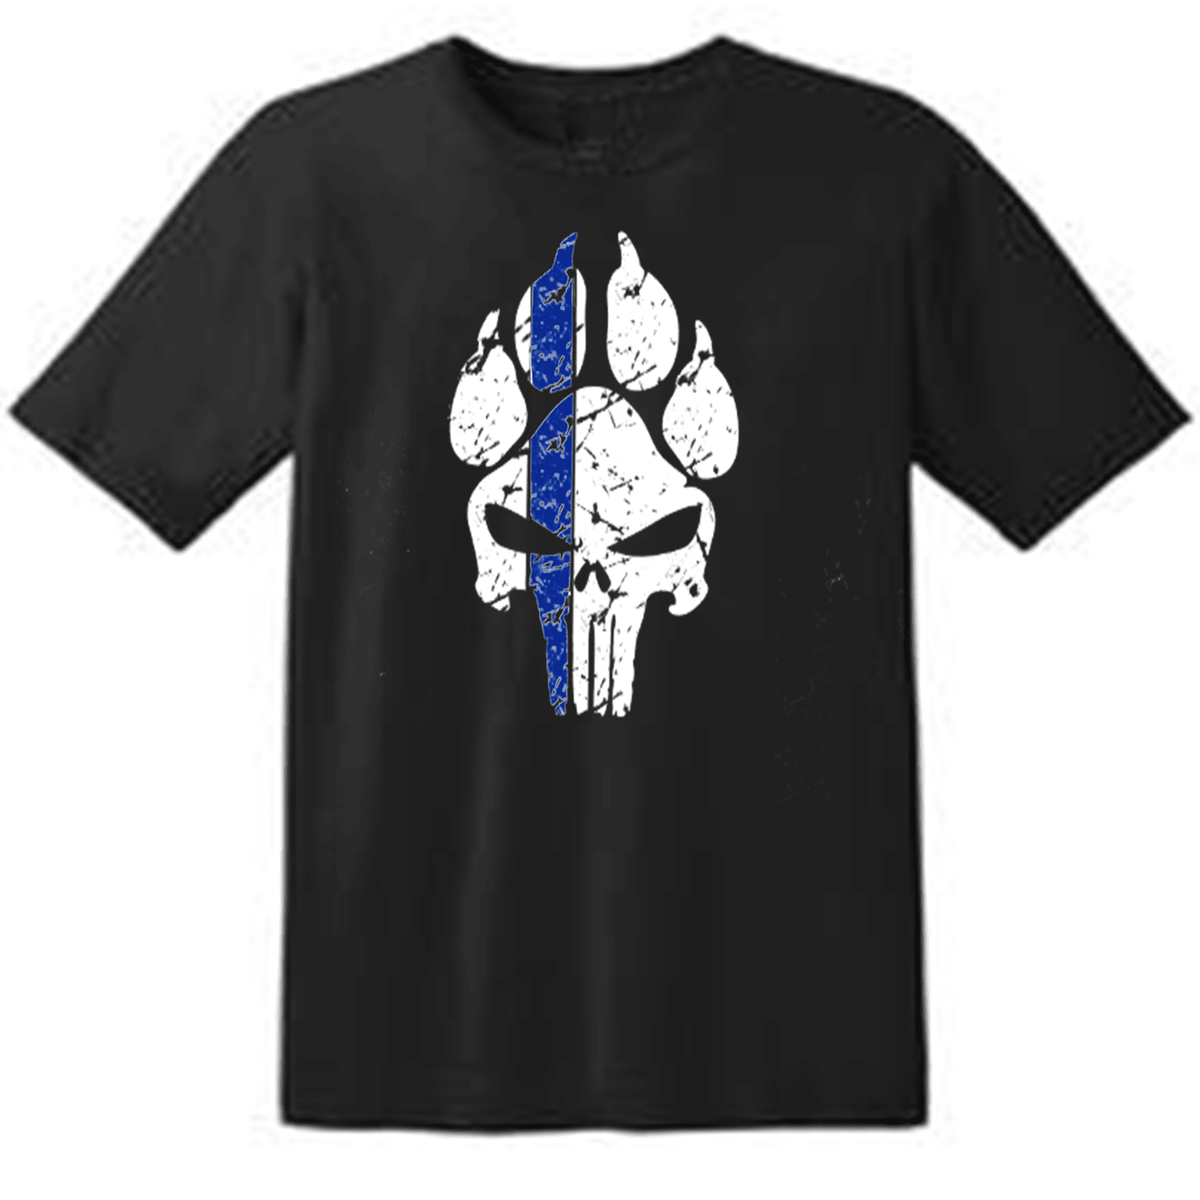 Tshirts - K9 PUNISHER T-SHIRT